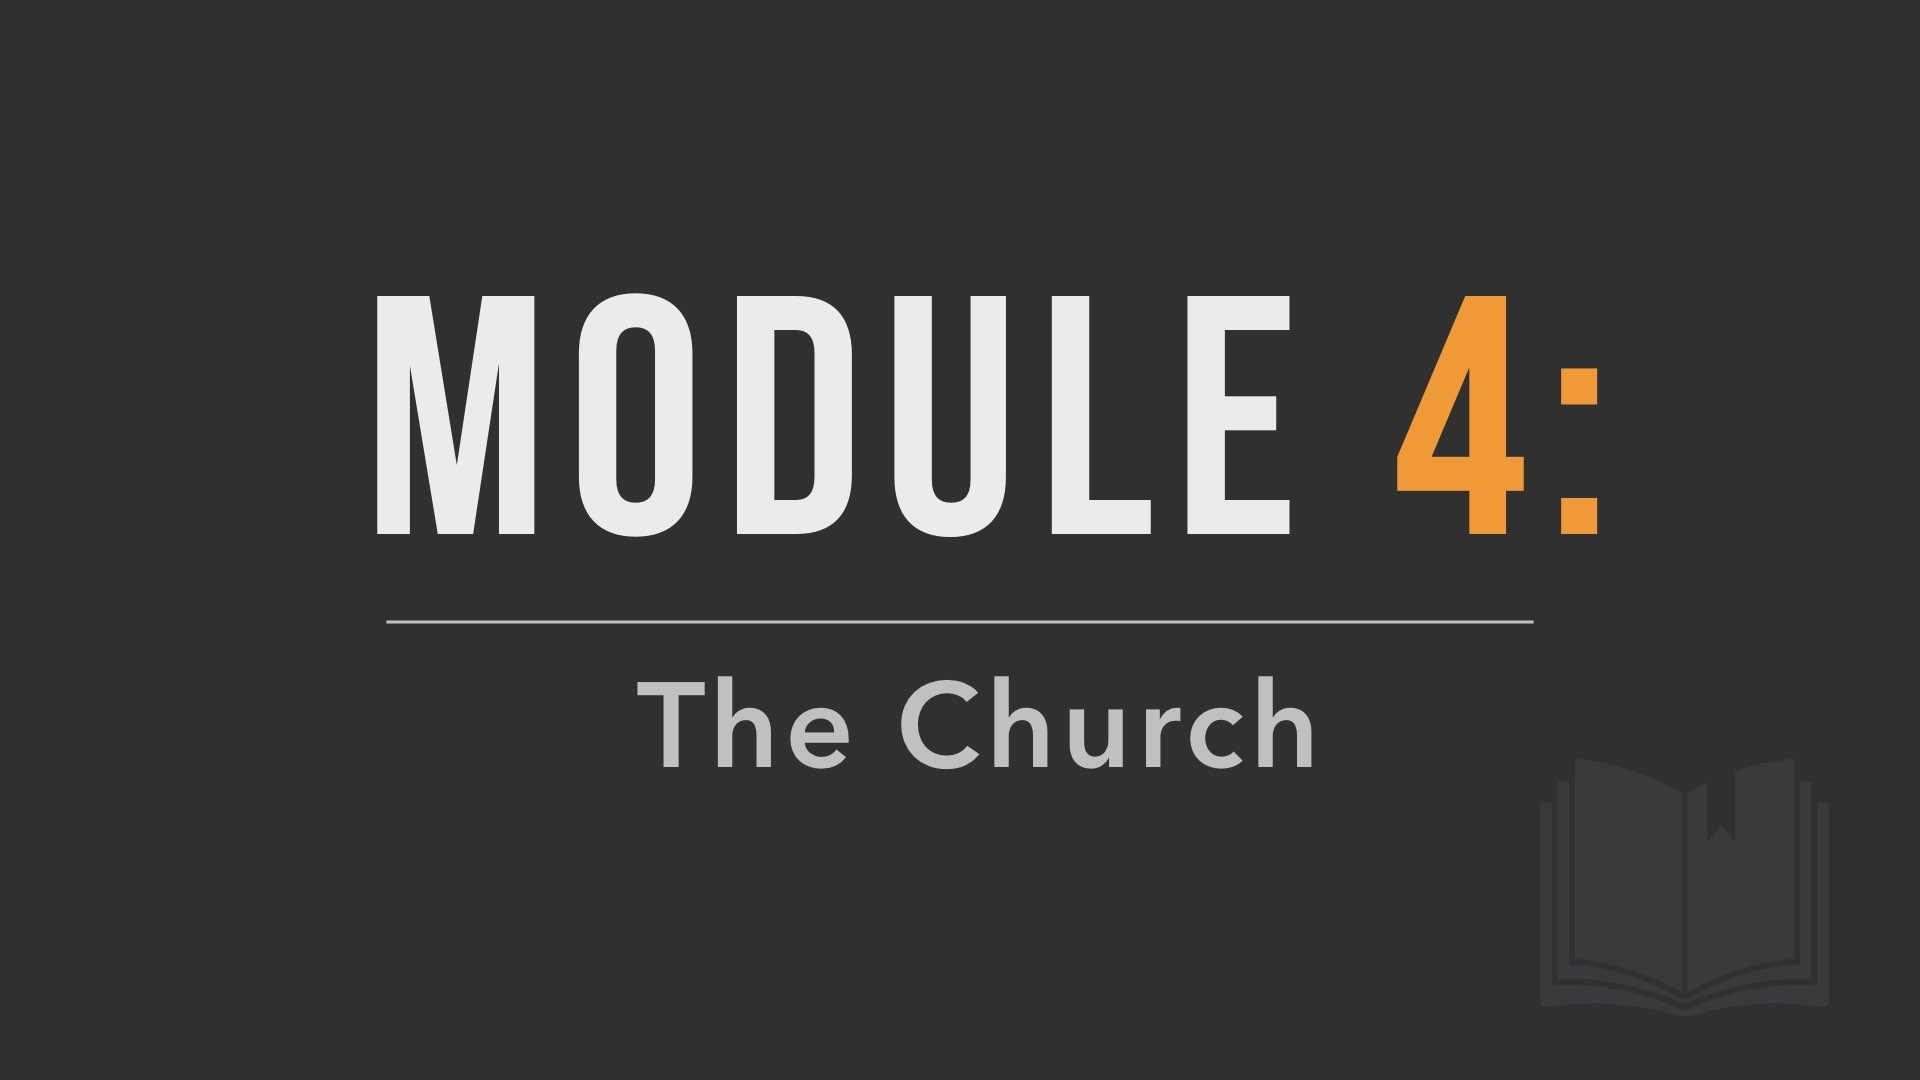 Module 4 Poster Image